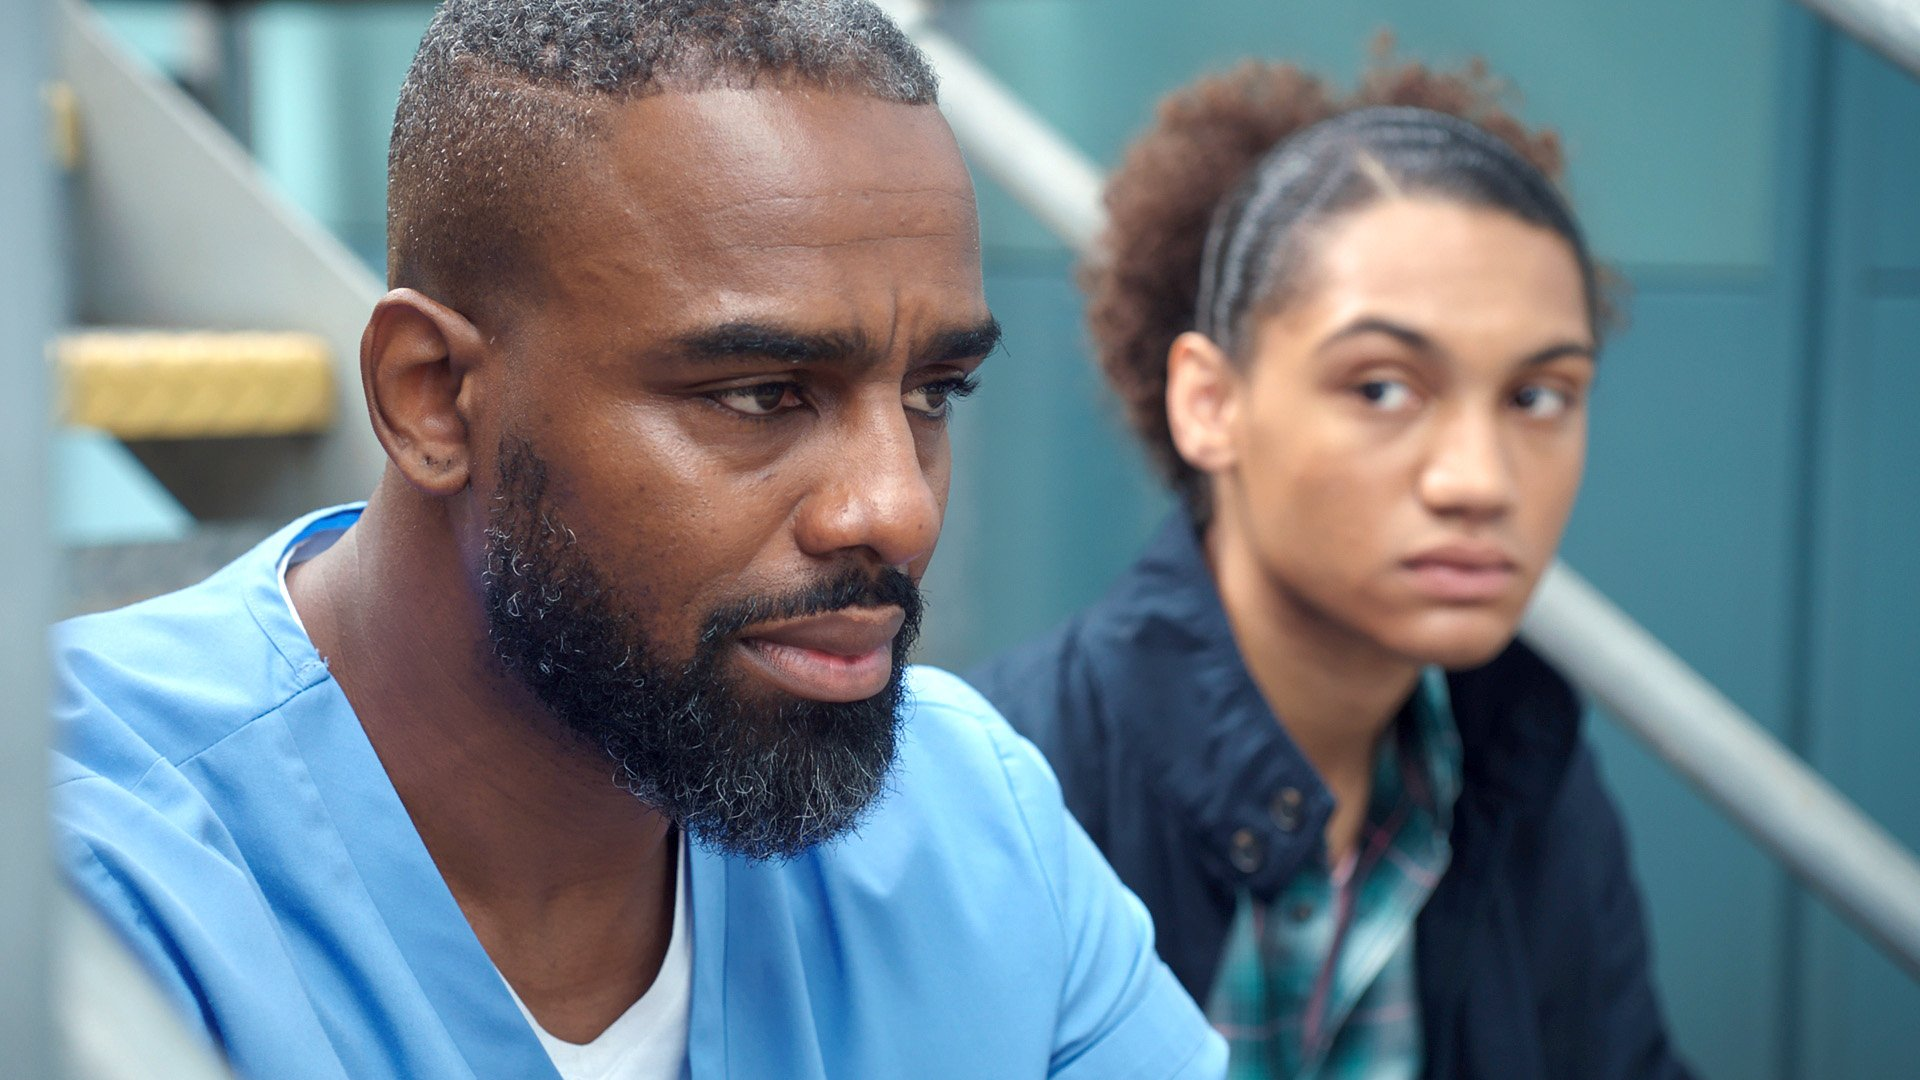 WARNING: Embargoed for publication until 00:00:01 on 02/10/2018 - Programme Name: Casualty - Series 33 - TX: 06/10/2018 - Episode: Casualty - Series 33 - Ep8 (No. 8) - Picture Shows: Jacob Masters (CHARLES VENN), Blake Gardner (KAI THORNE) - (C) BBC - Photographer: n/a